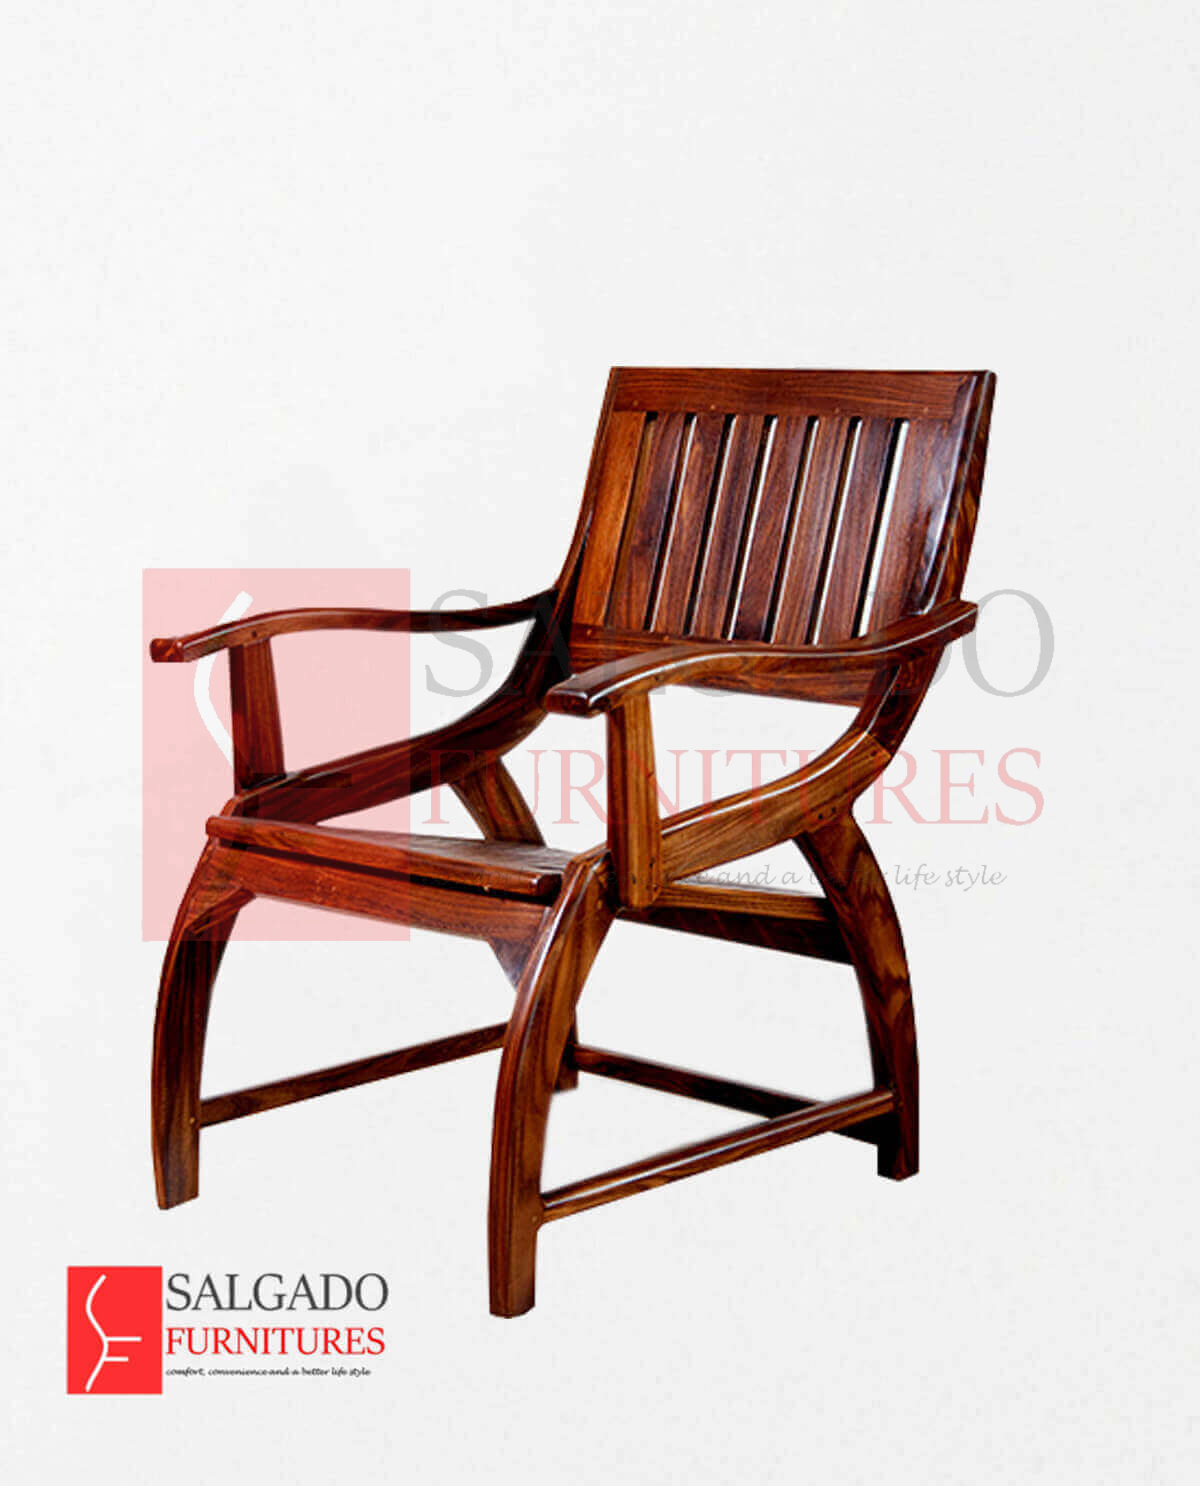 new-varandha-chair